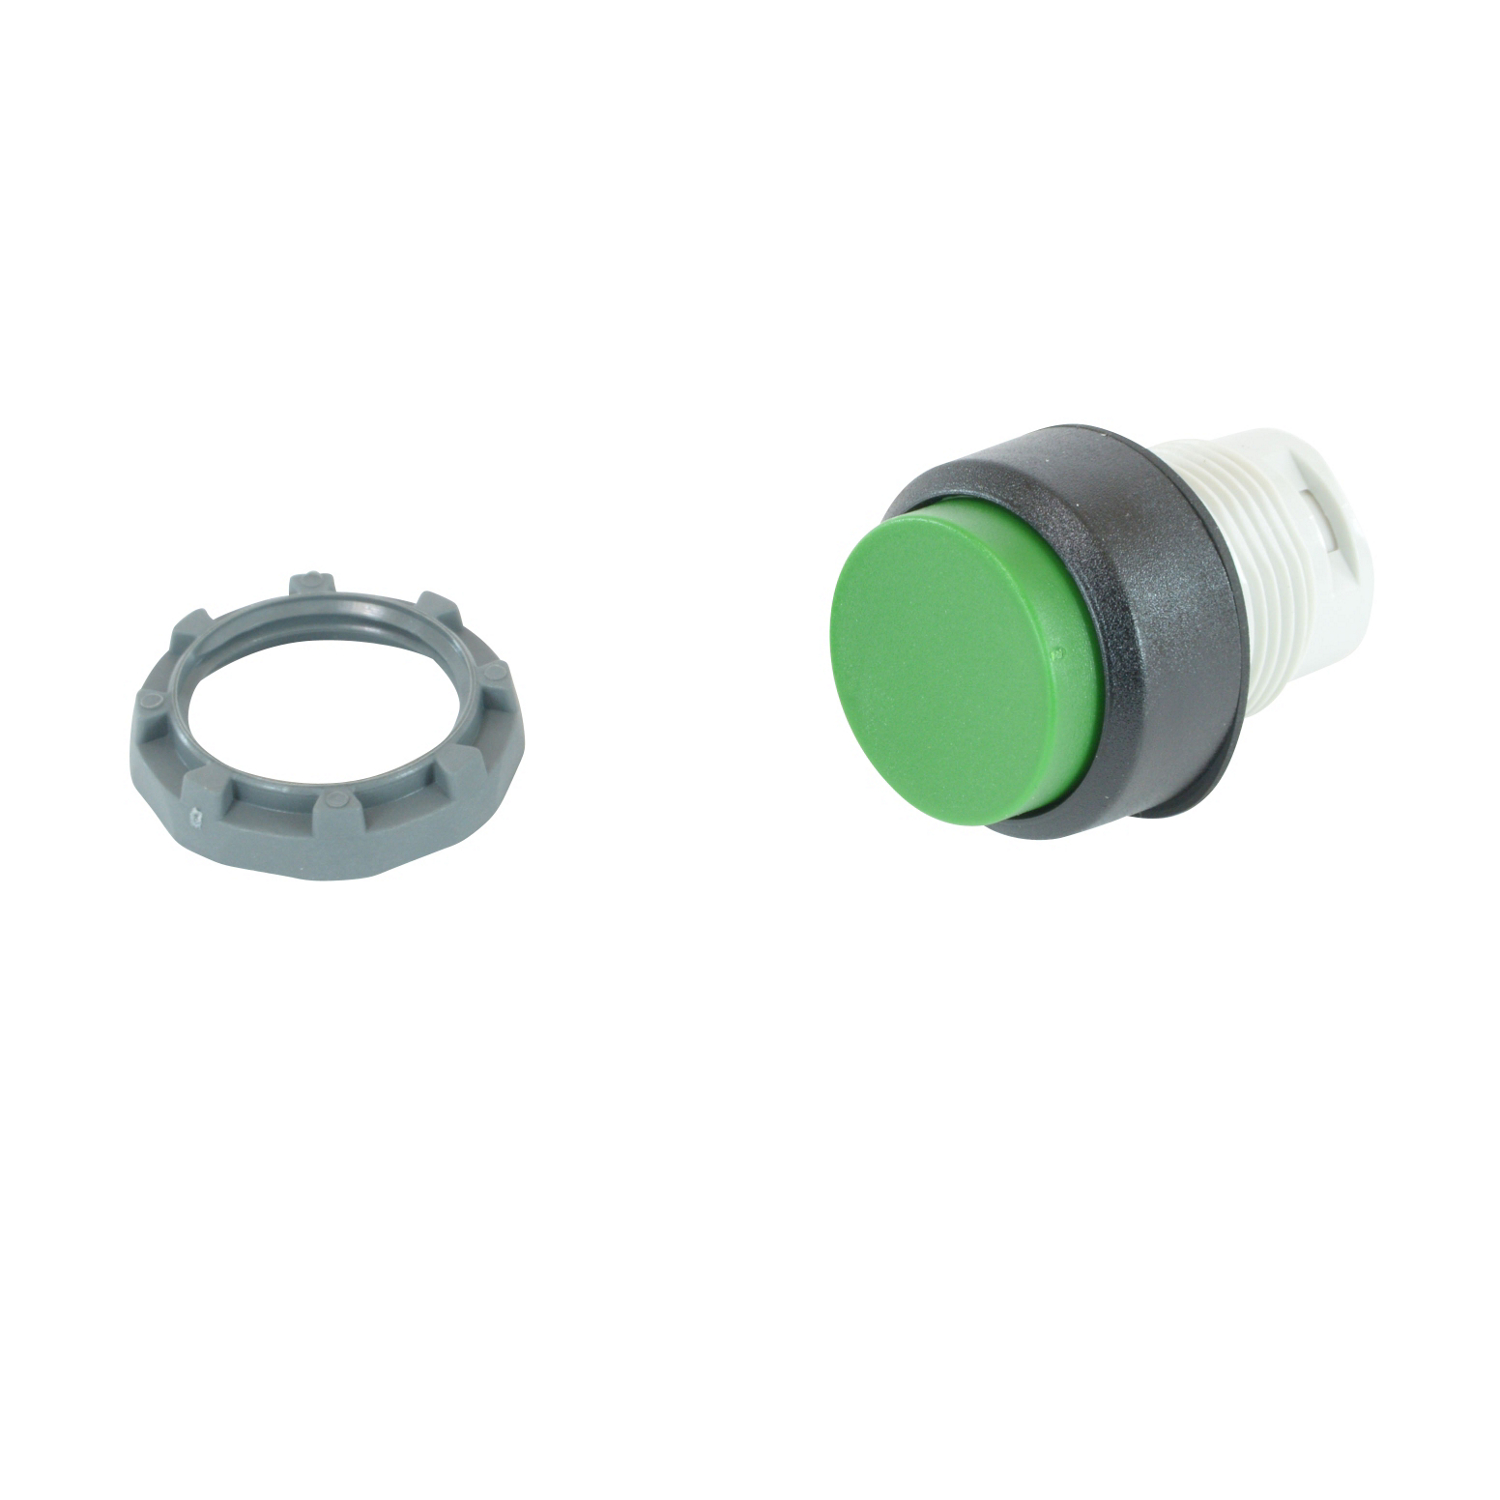 ABB MP3-10G Pushbutton operator, Momentary with green non-illuminated actuator and 22mm mounting ADD holder & Contacts